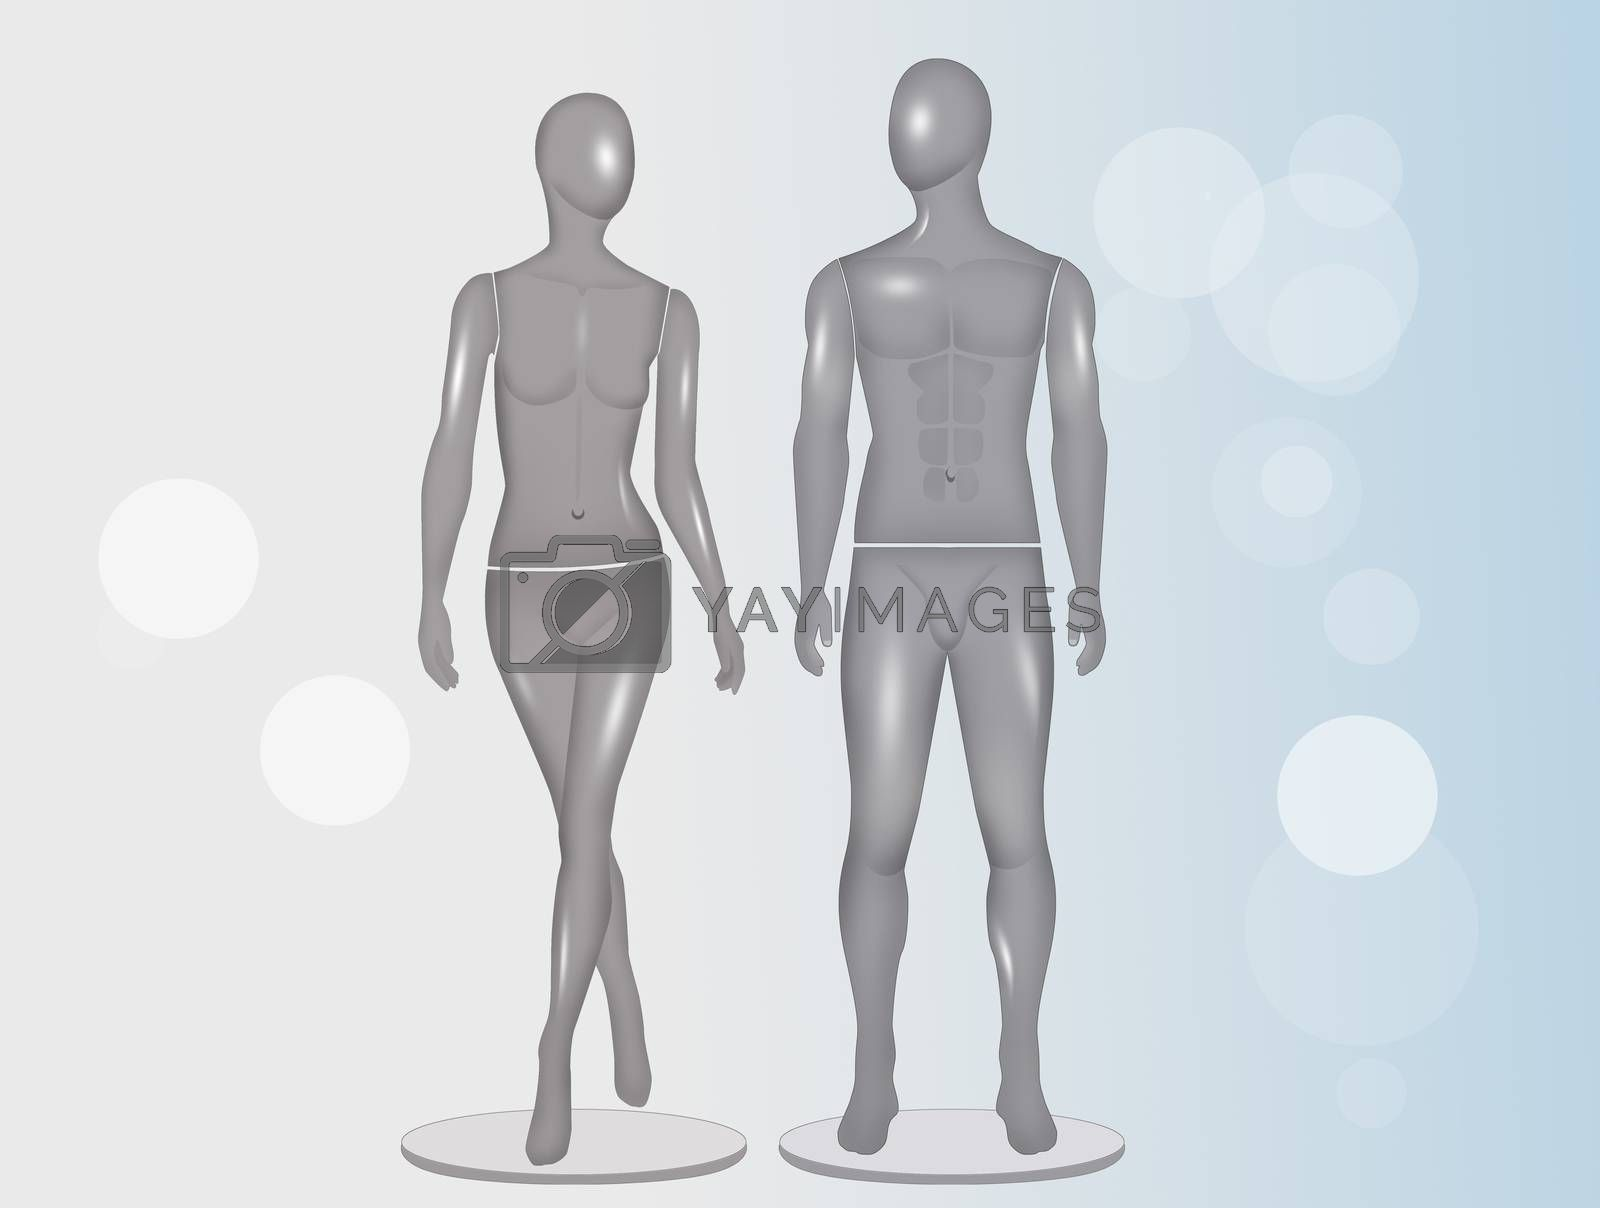 male and female mannequin by adrenalina